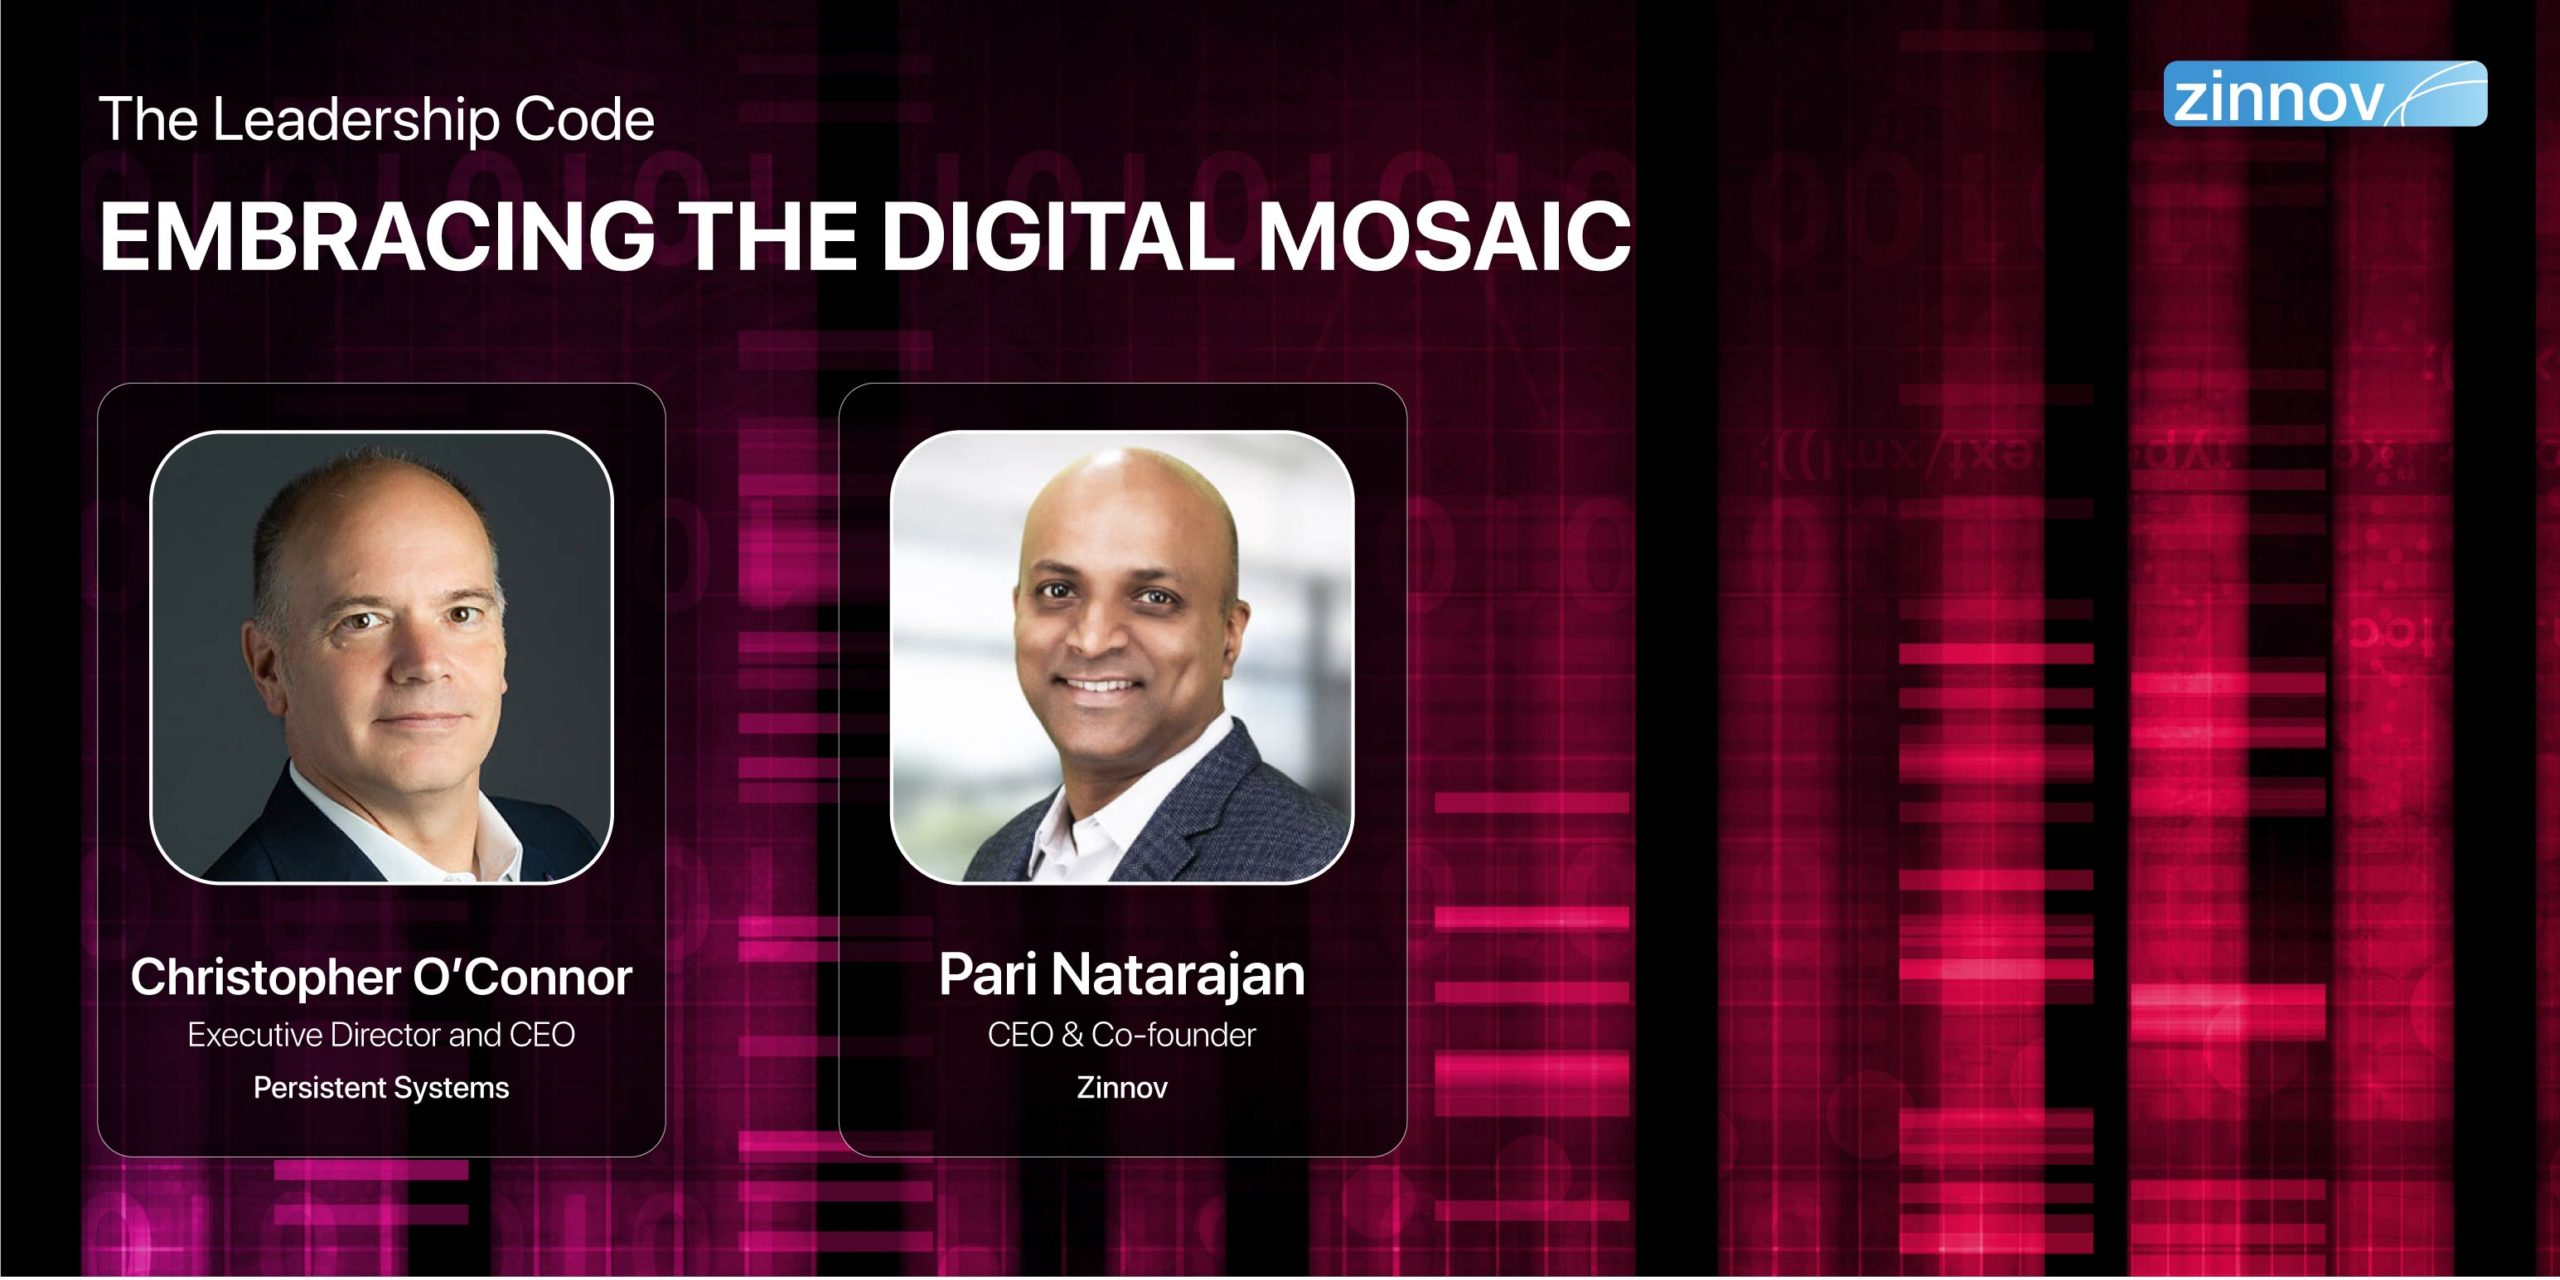 Embracing the Digital Mosaic Framework